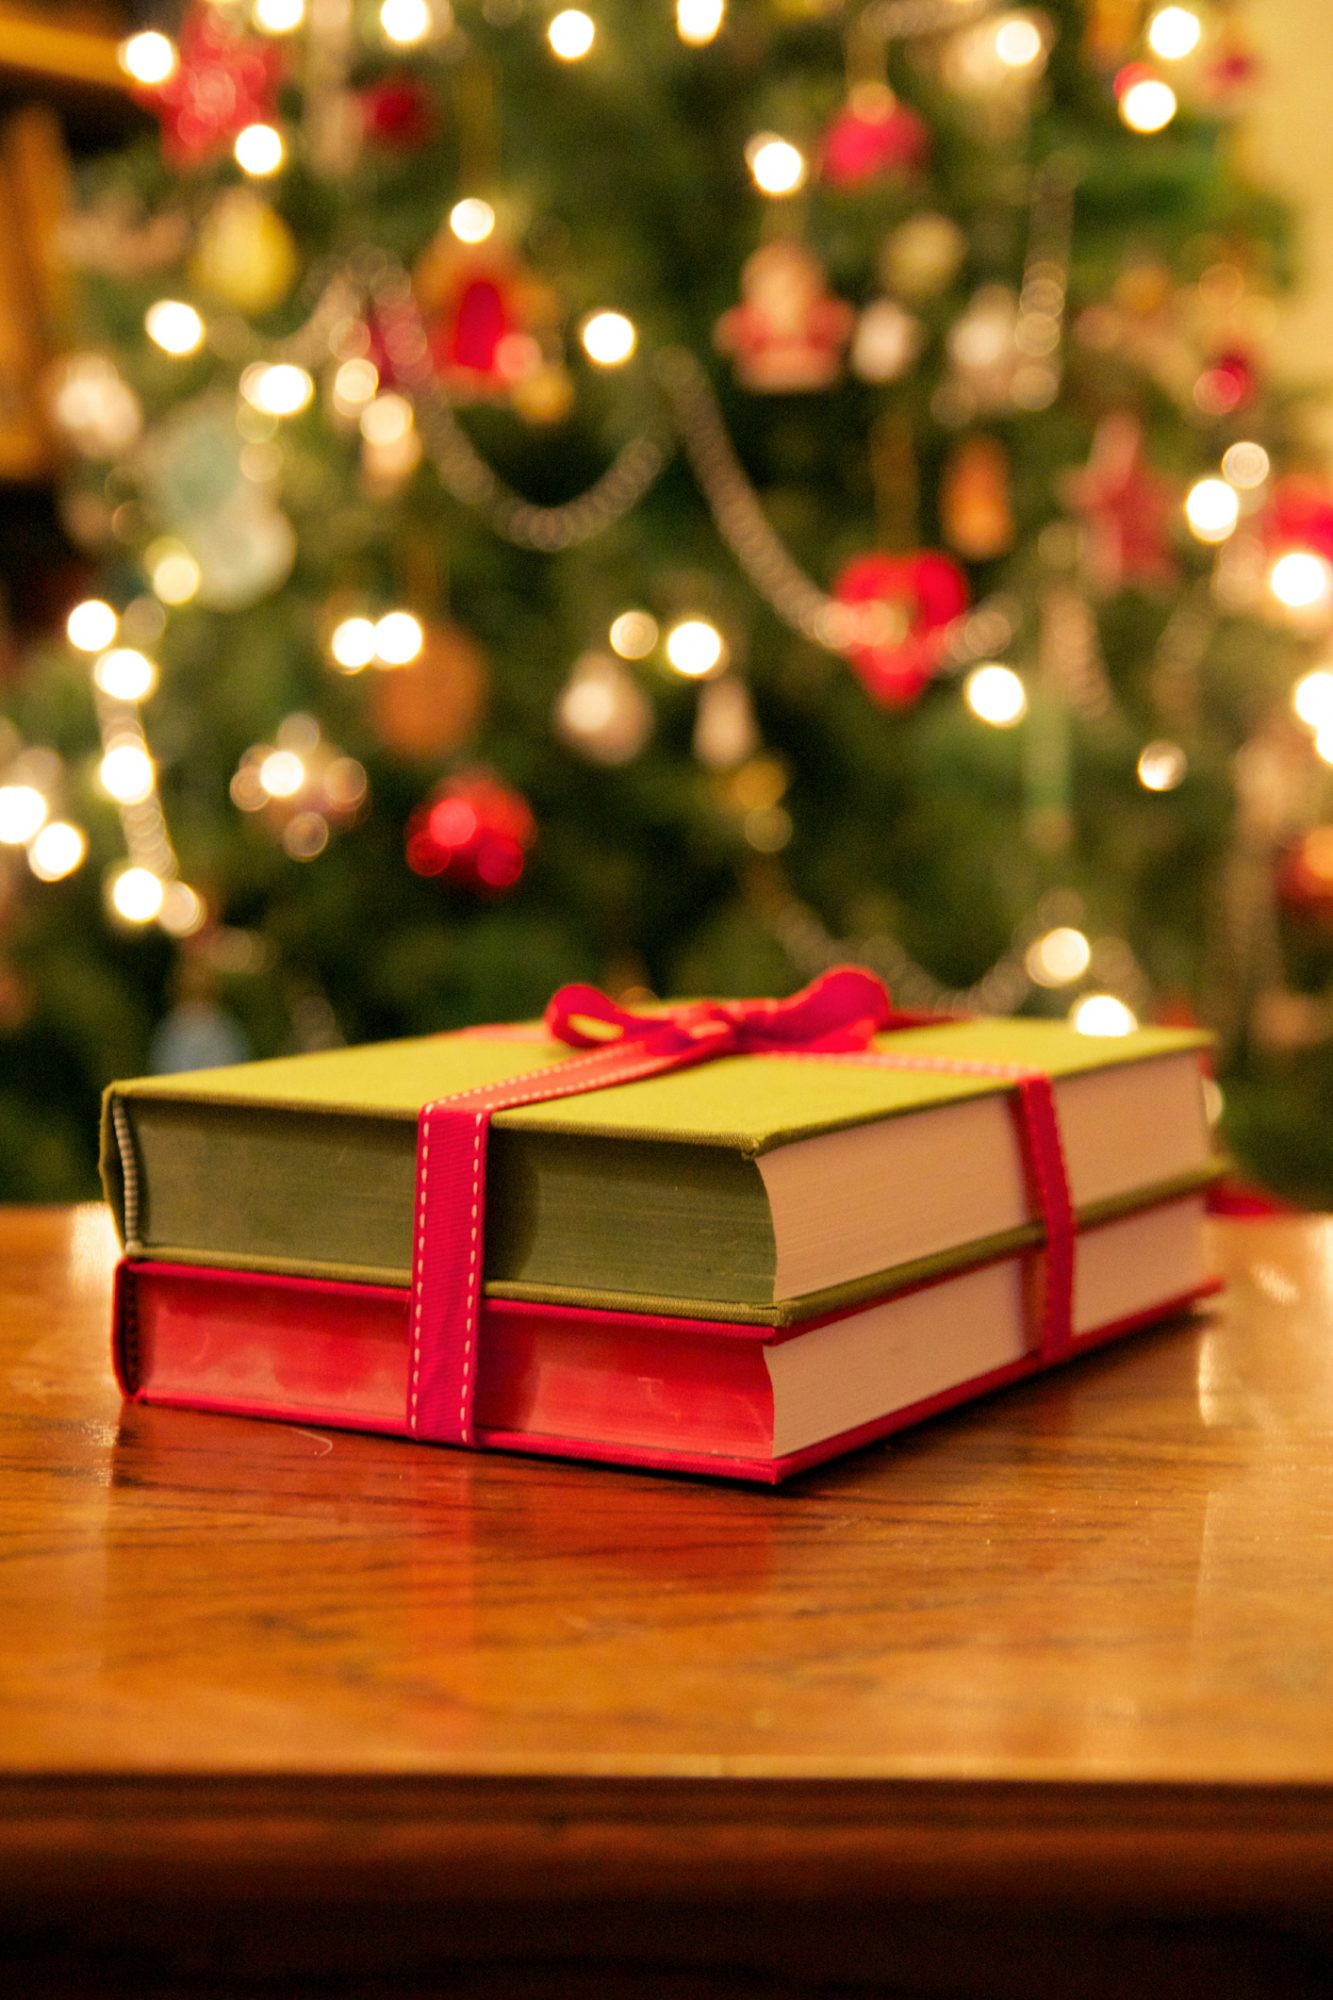 Books tied with ribbon near Christmas tree